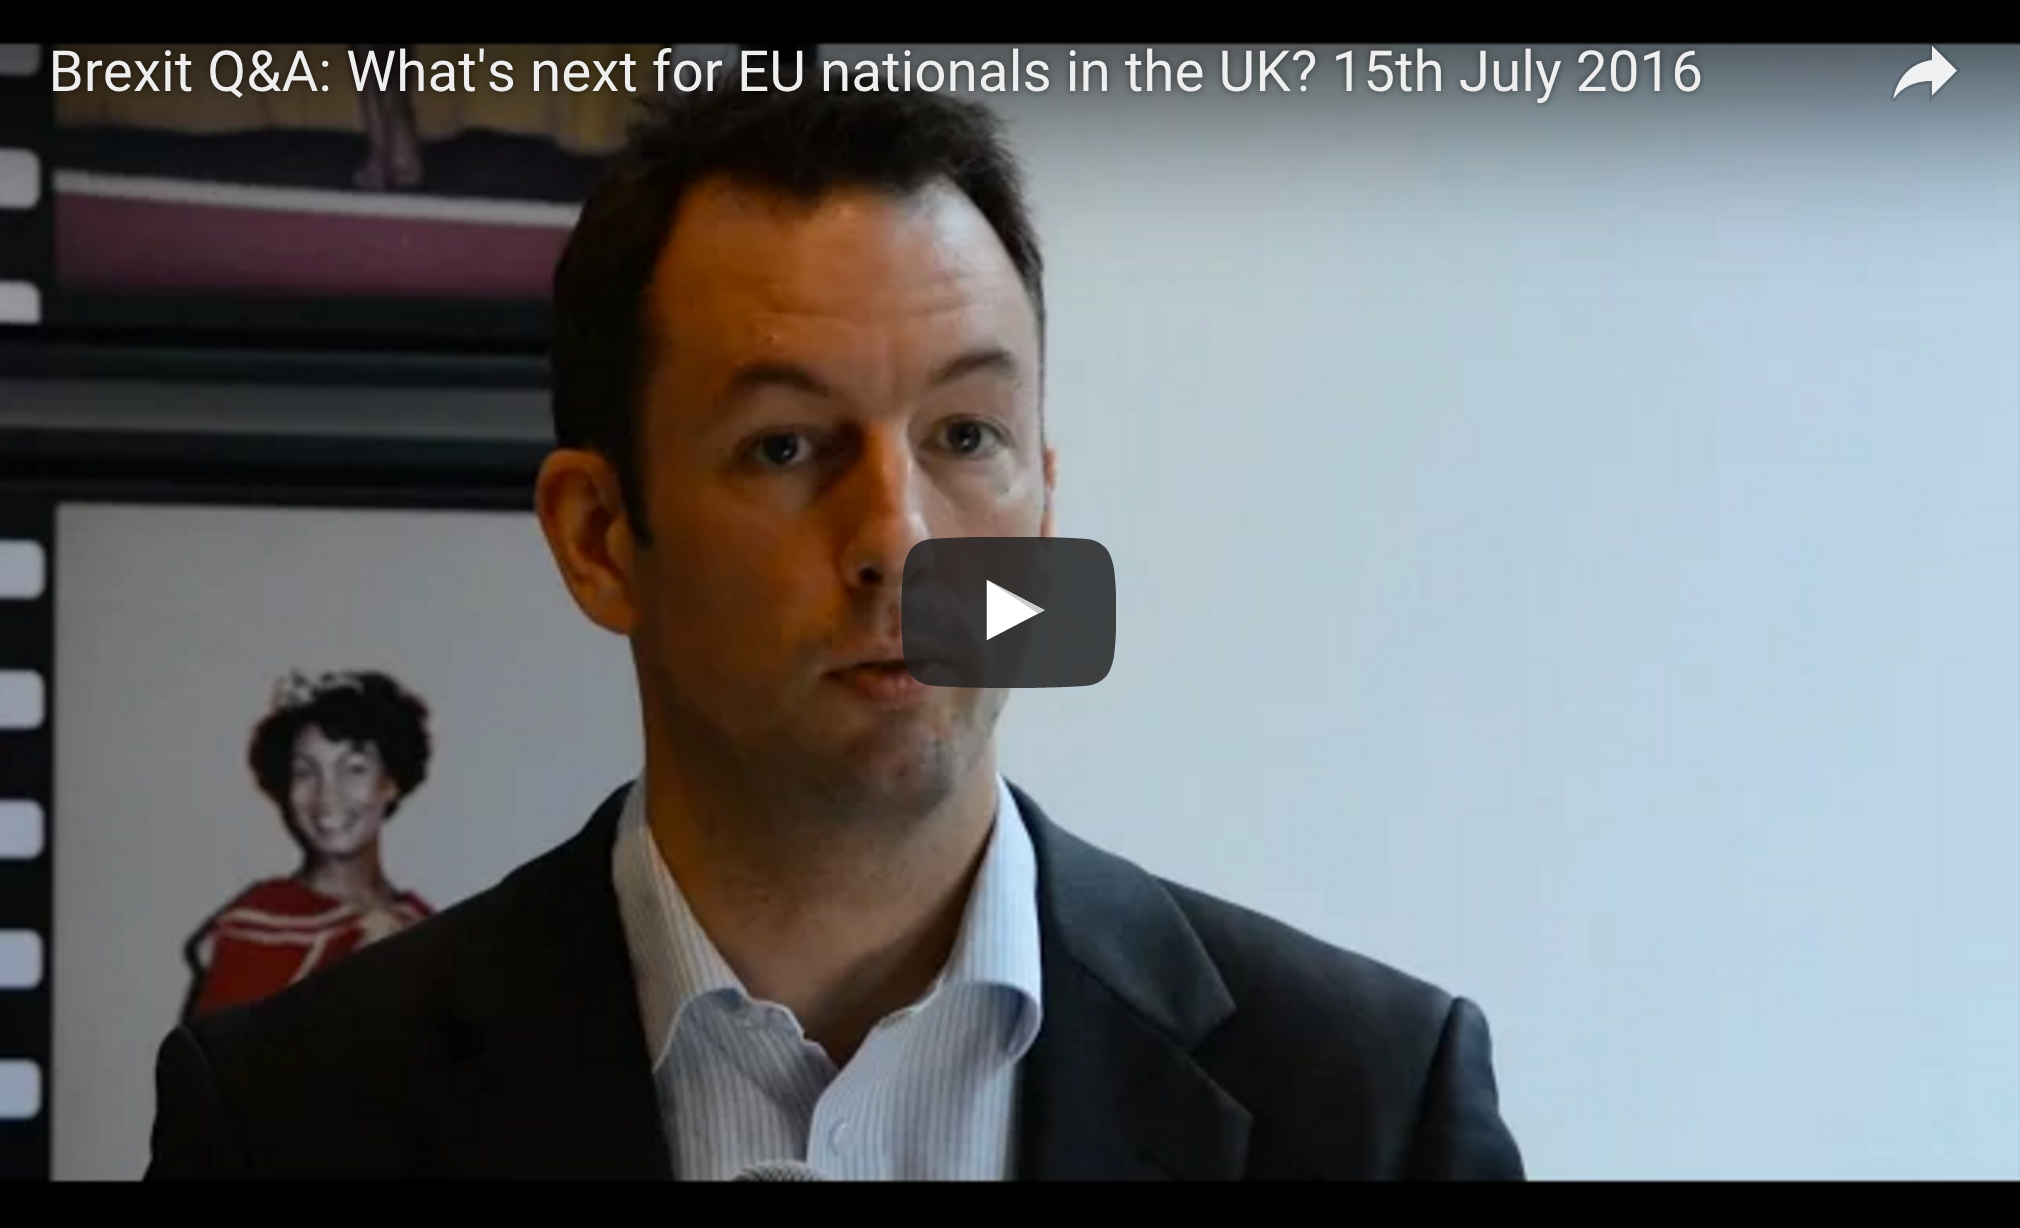 Brexit question and answer session: video